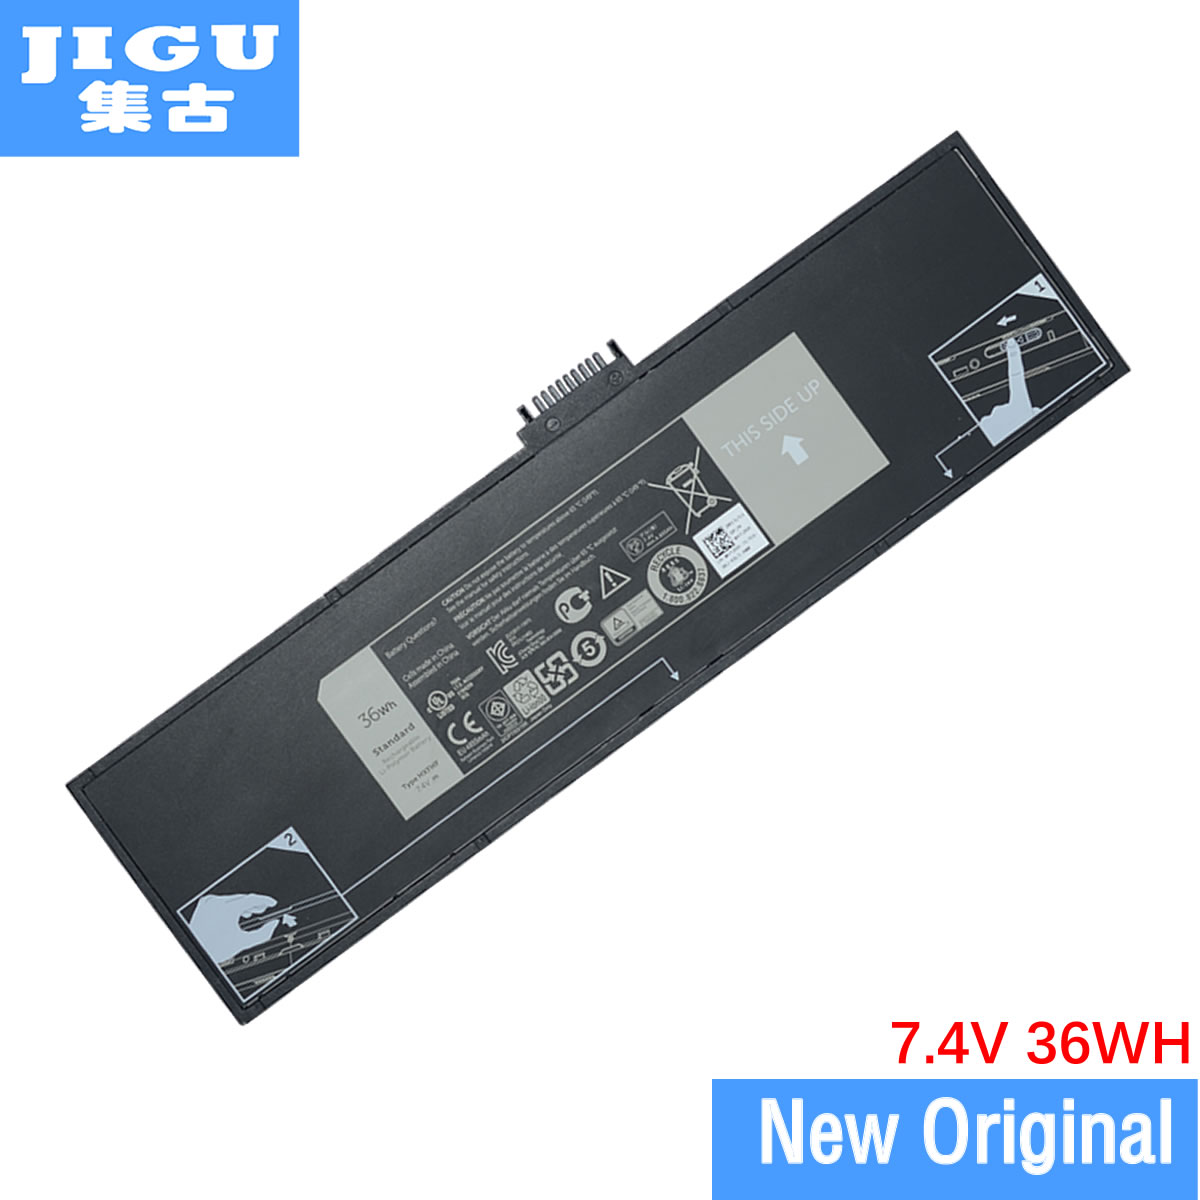 JIGU HXFHF Original Laptop <font><b>Battery</b></font> For <font><b>DELL</b></font> For Venue 11 Pro (7130) 11 Pro (7139) 11 Pro <font><b>7140</b></font> image